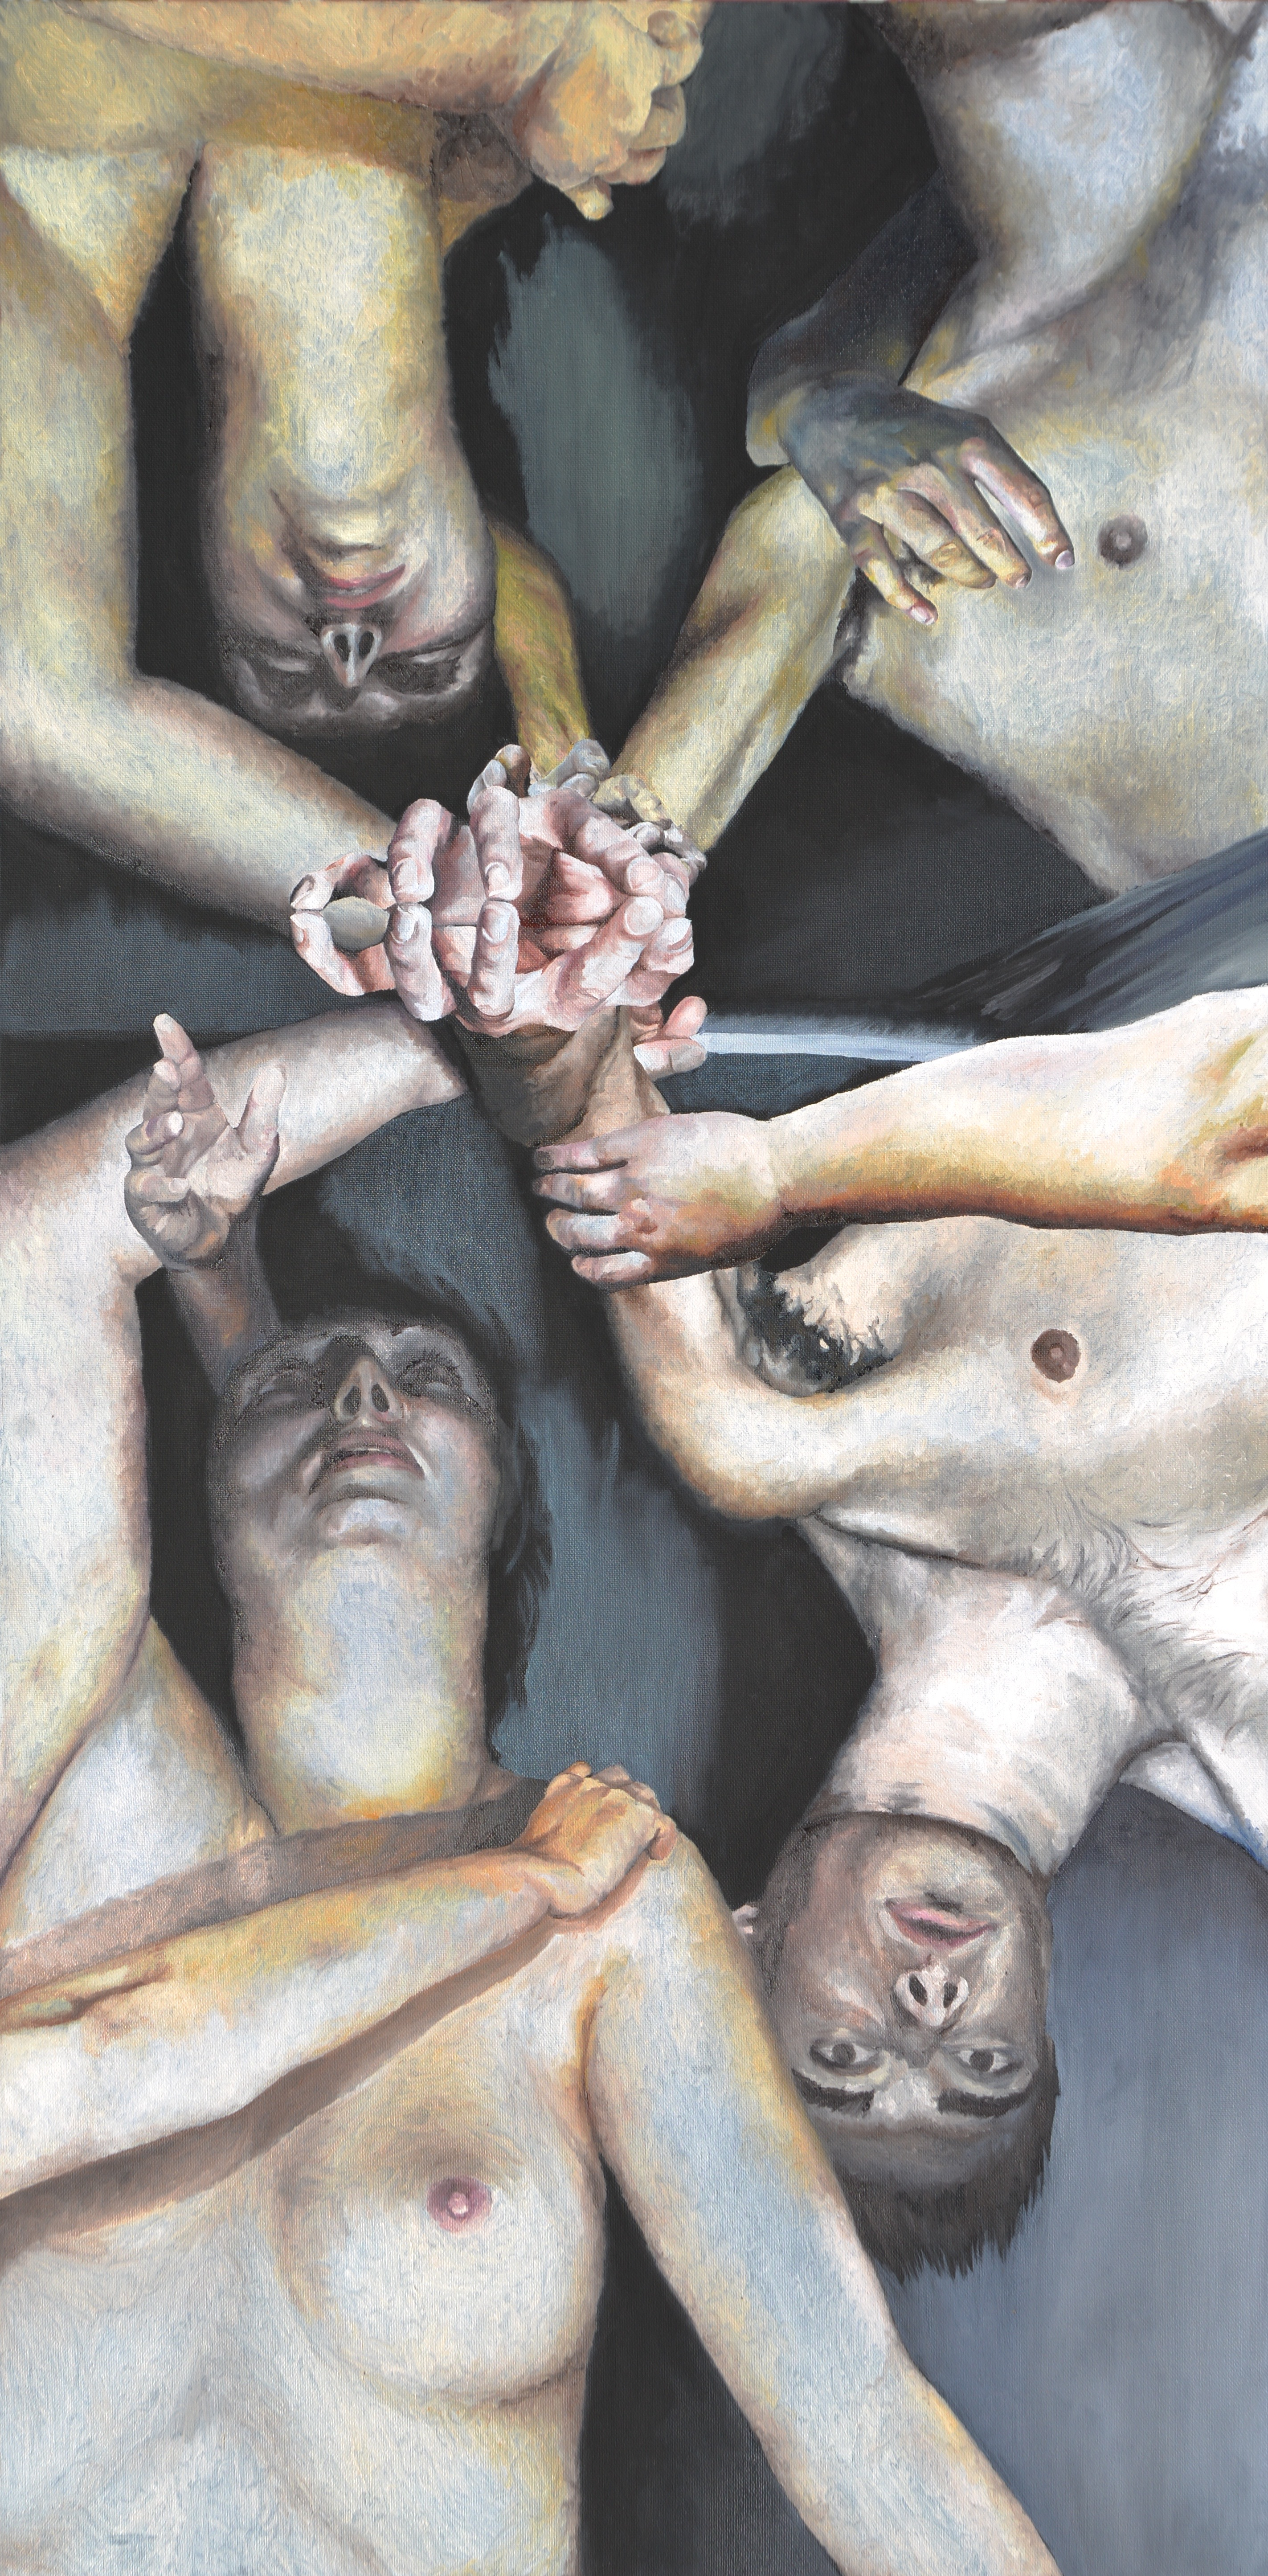 A painting of four shirtless people lying on their backs with their heads together and their hands raised above their heads to clasp hands. The image is full of cool grays, muted yellows, and cool pinks.